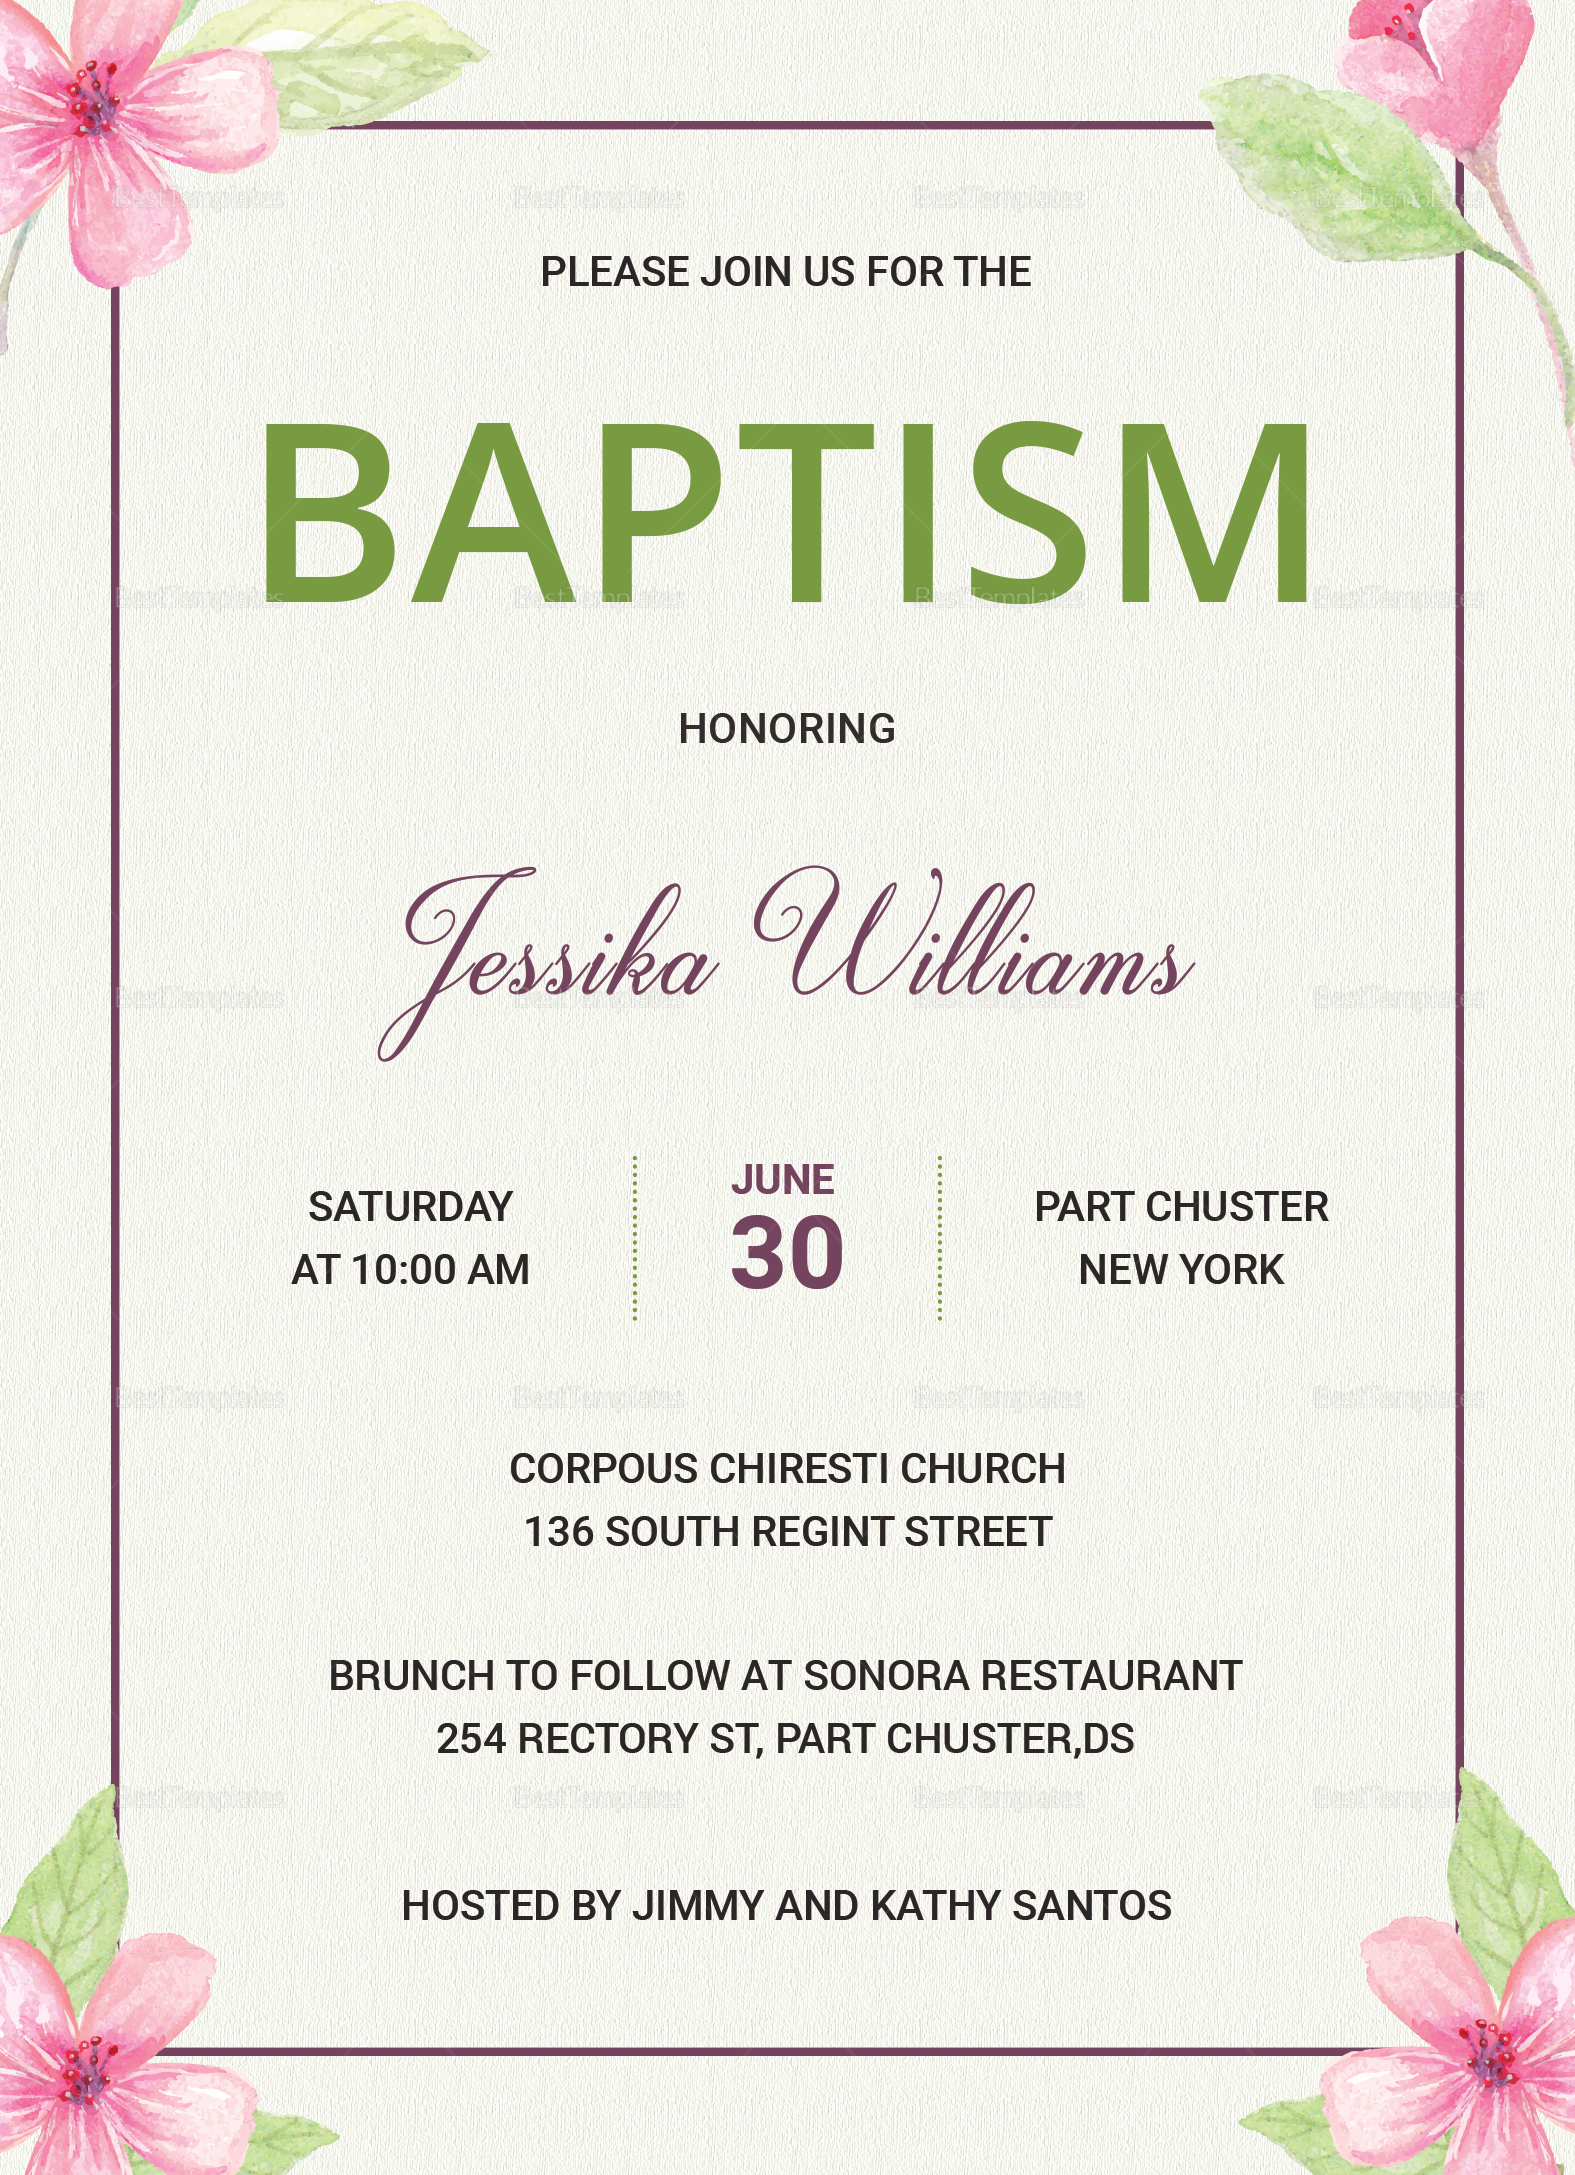 Floral Baptism Invitation Card Design Template